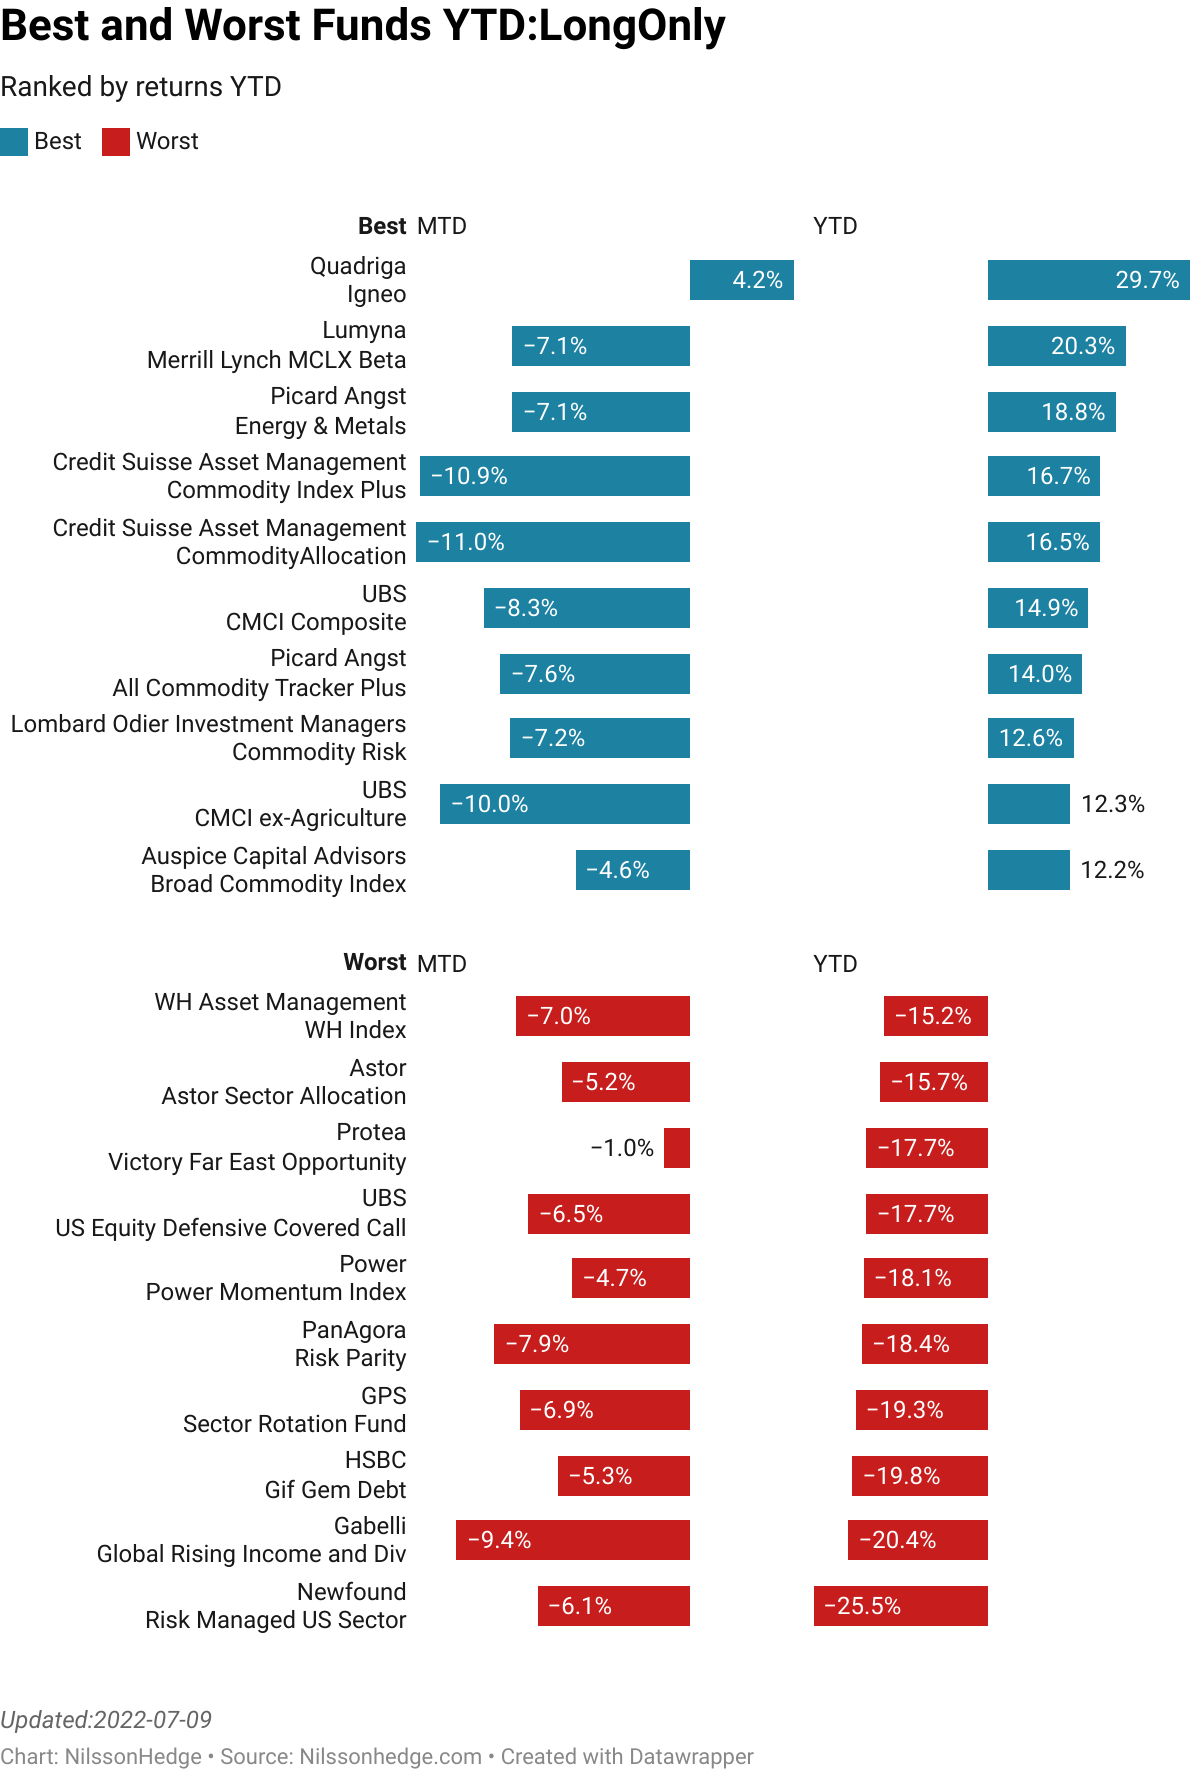 Best/Worst Long Only funds YTD, Performance, Flash Report, UBS, Power, Swisscanto, Picard, Commodity, Equity, Fixed Income